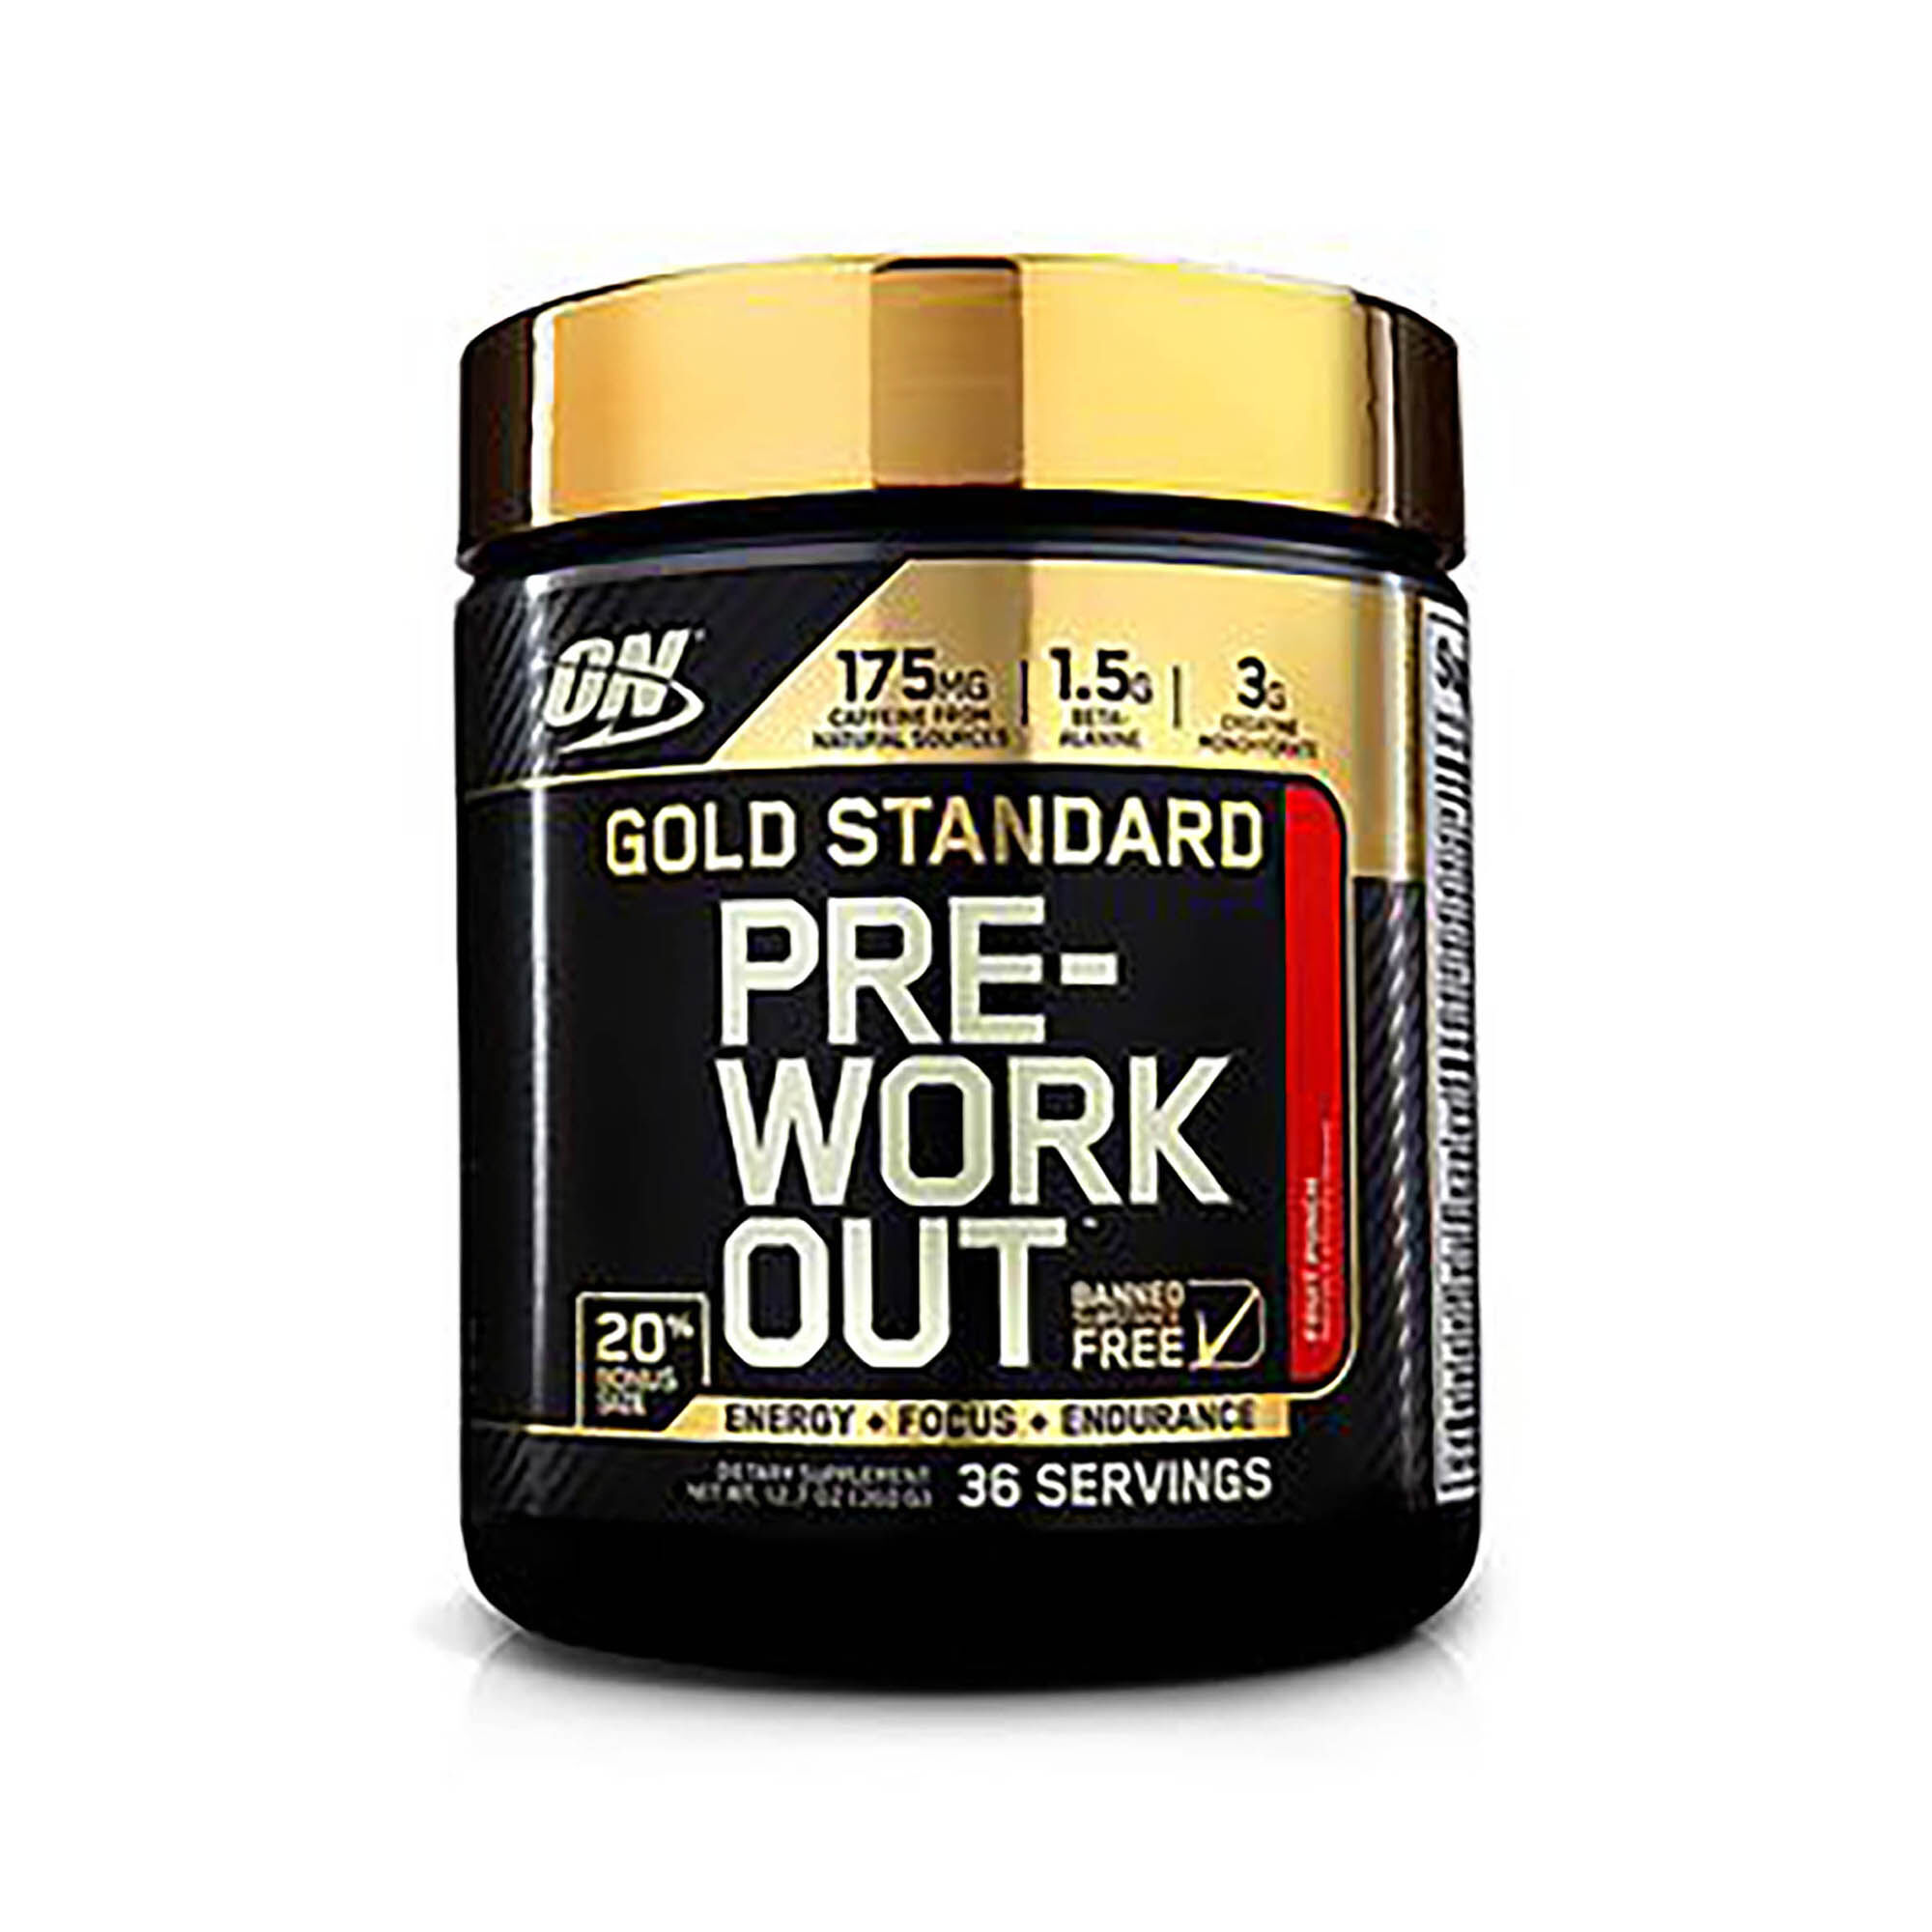 Gold Standard Pre Workout Trade Fruit Punch Exclusive 20 More Free Bonus